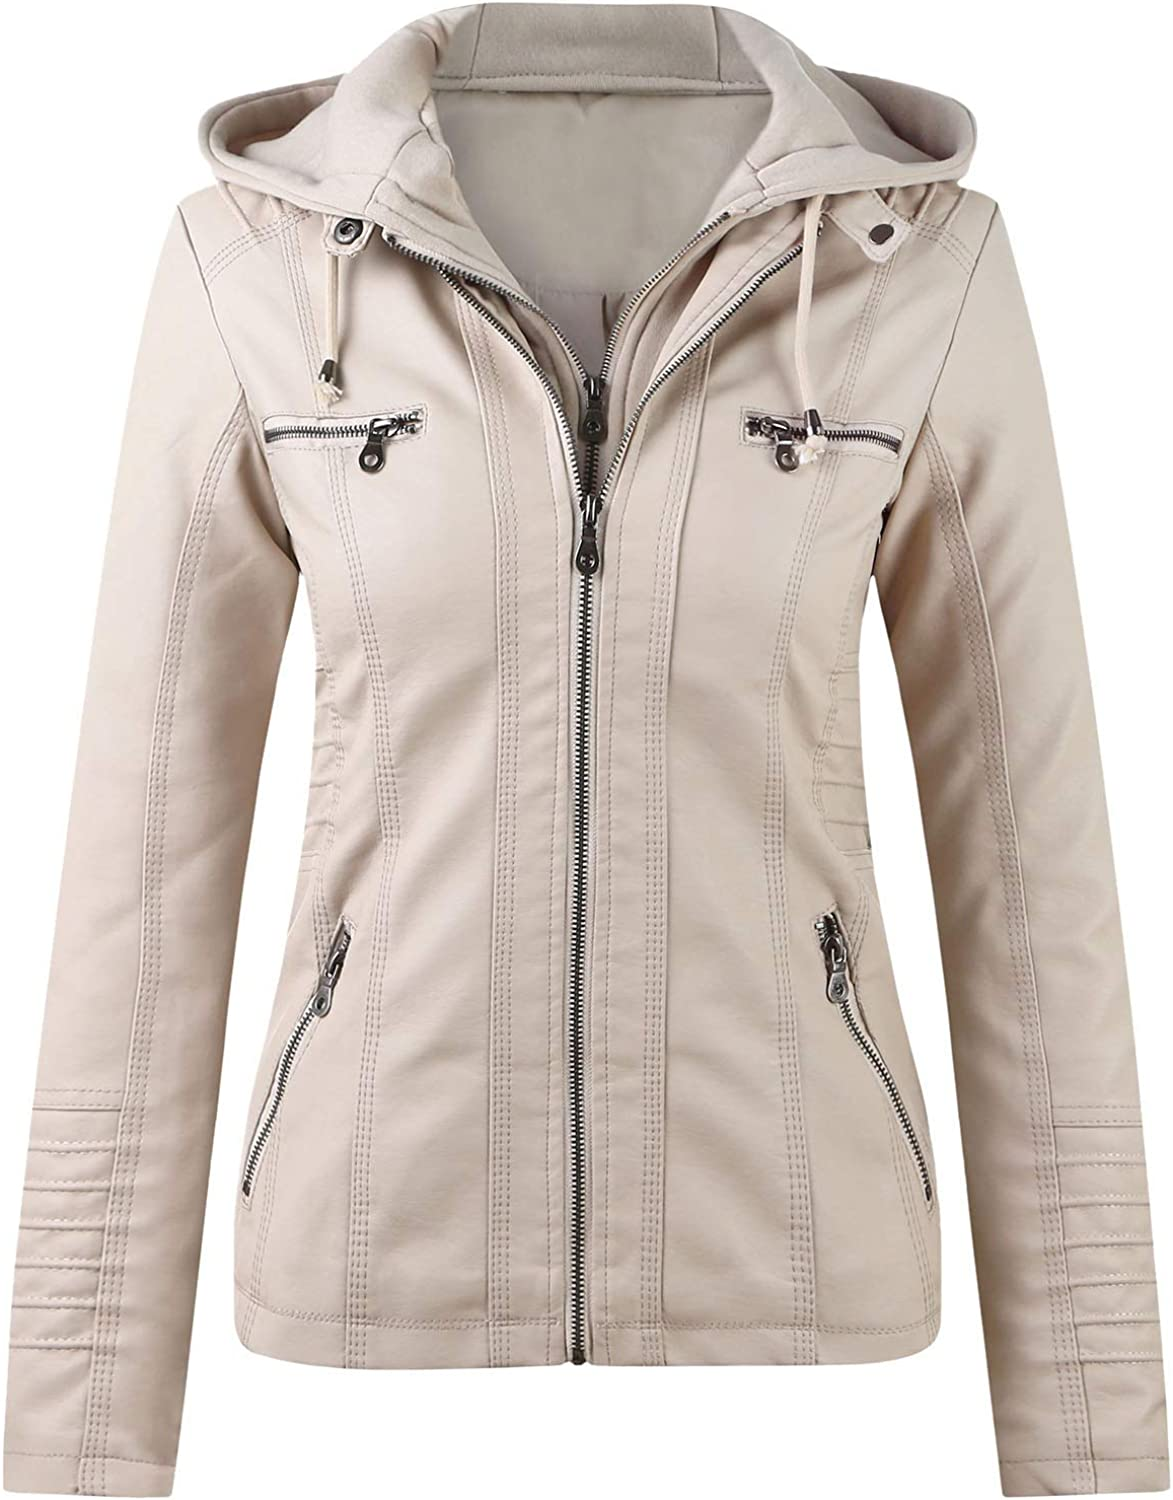 Tynelles Womens Faux Leather Motorcycle Jacket Zip Up Fitted Slim Coat Biker Outwear with Hood Short PU Jacket with Pocket Beige